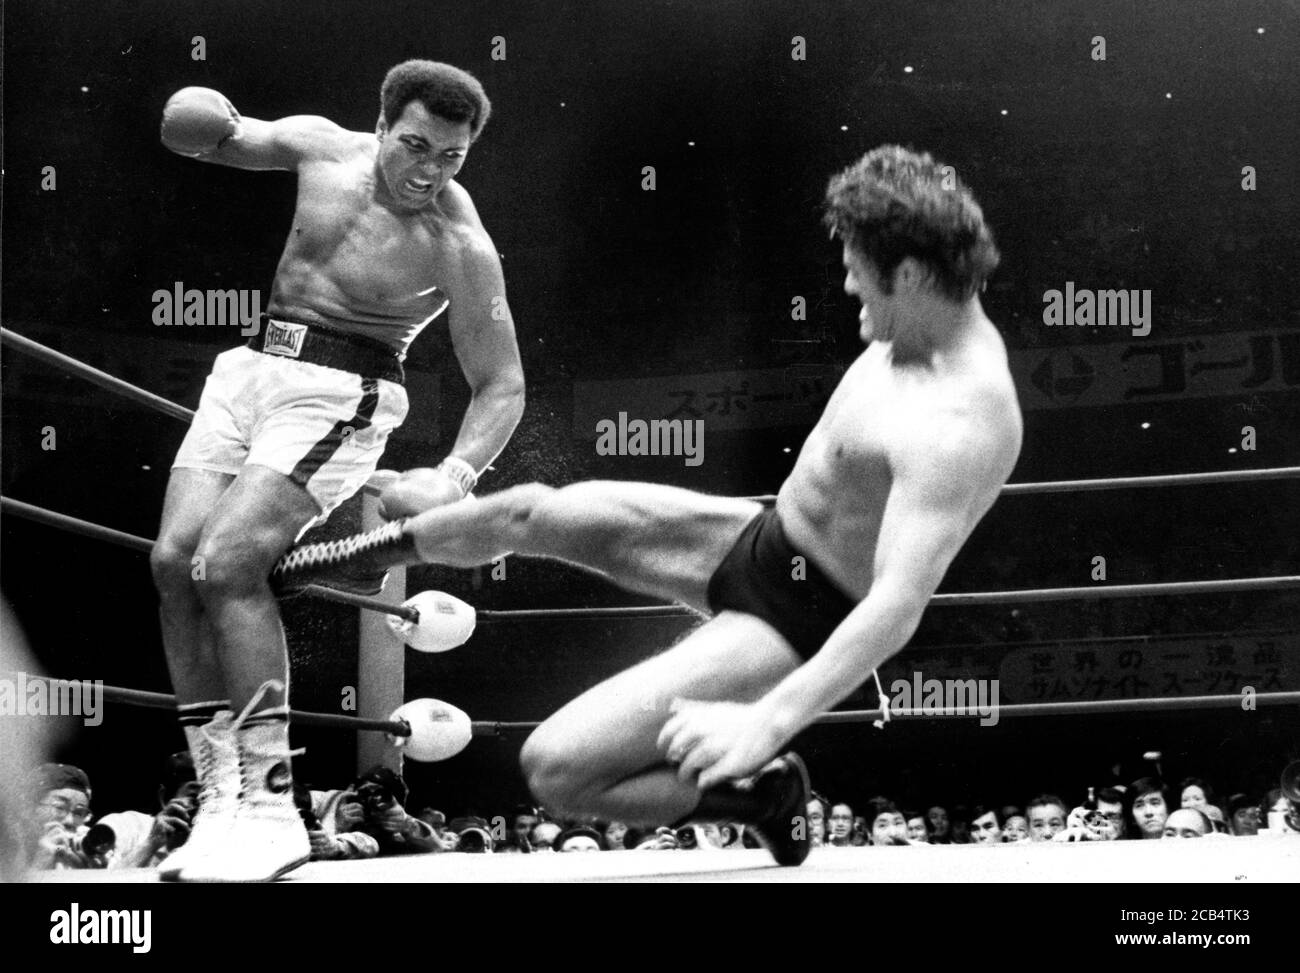 June 26, 1976 - Tokyo, Japan - Japanese professional wrestler ANTONIO INOKI kicks American boxer MUHAMMAD ALI during their bout held at the Nippon Budokan. Ali was the reigning WBC/WBA Heavyweight Champion and Inoki was staging exhibition fights against champions of various martial arts, in an attempt to show that pro wrestling was the dominant fighting discipline. The fight itself, which was fought under special rules, is seen as a precursor to modern mixed martial arts The result of the fight has been long debated by the press and fans. The fight was refereed by G. LeBell. (Credit Image: © Stock Photo